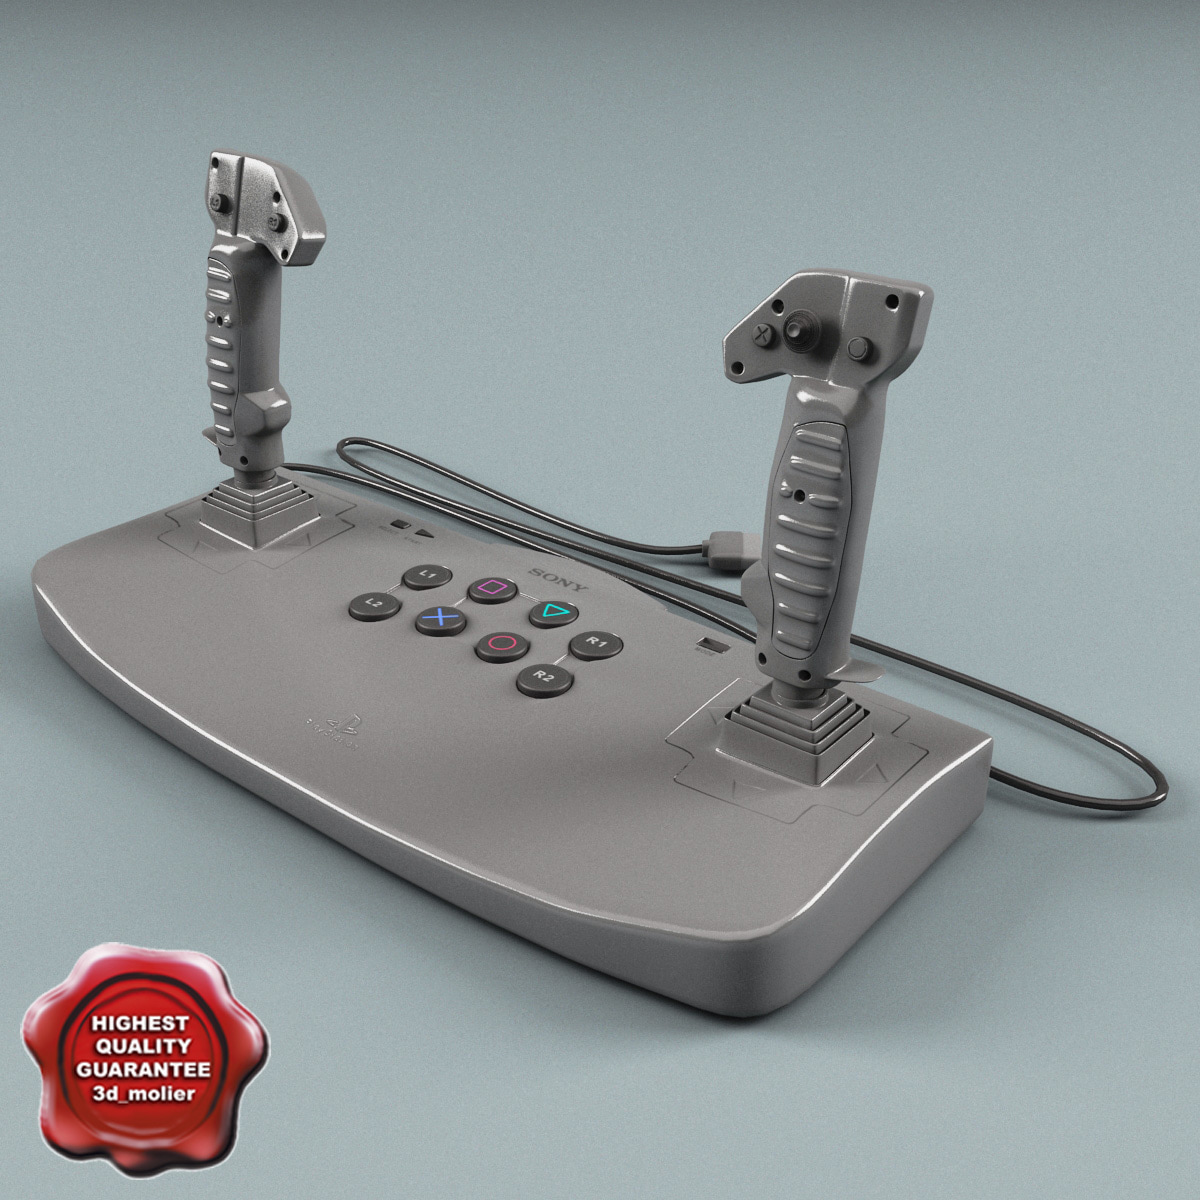 PlayStation_Analog_Joystick_00.jpg